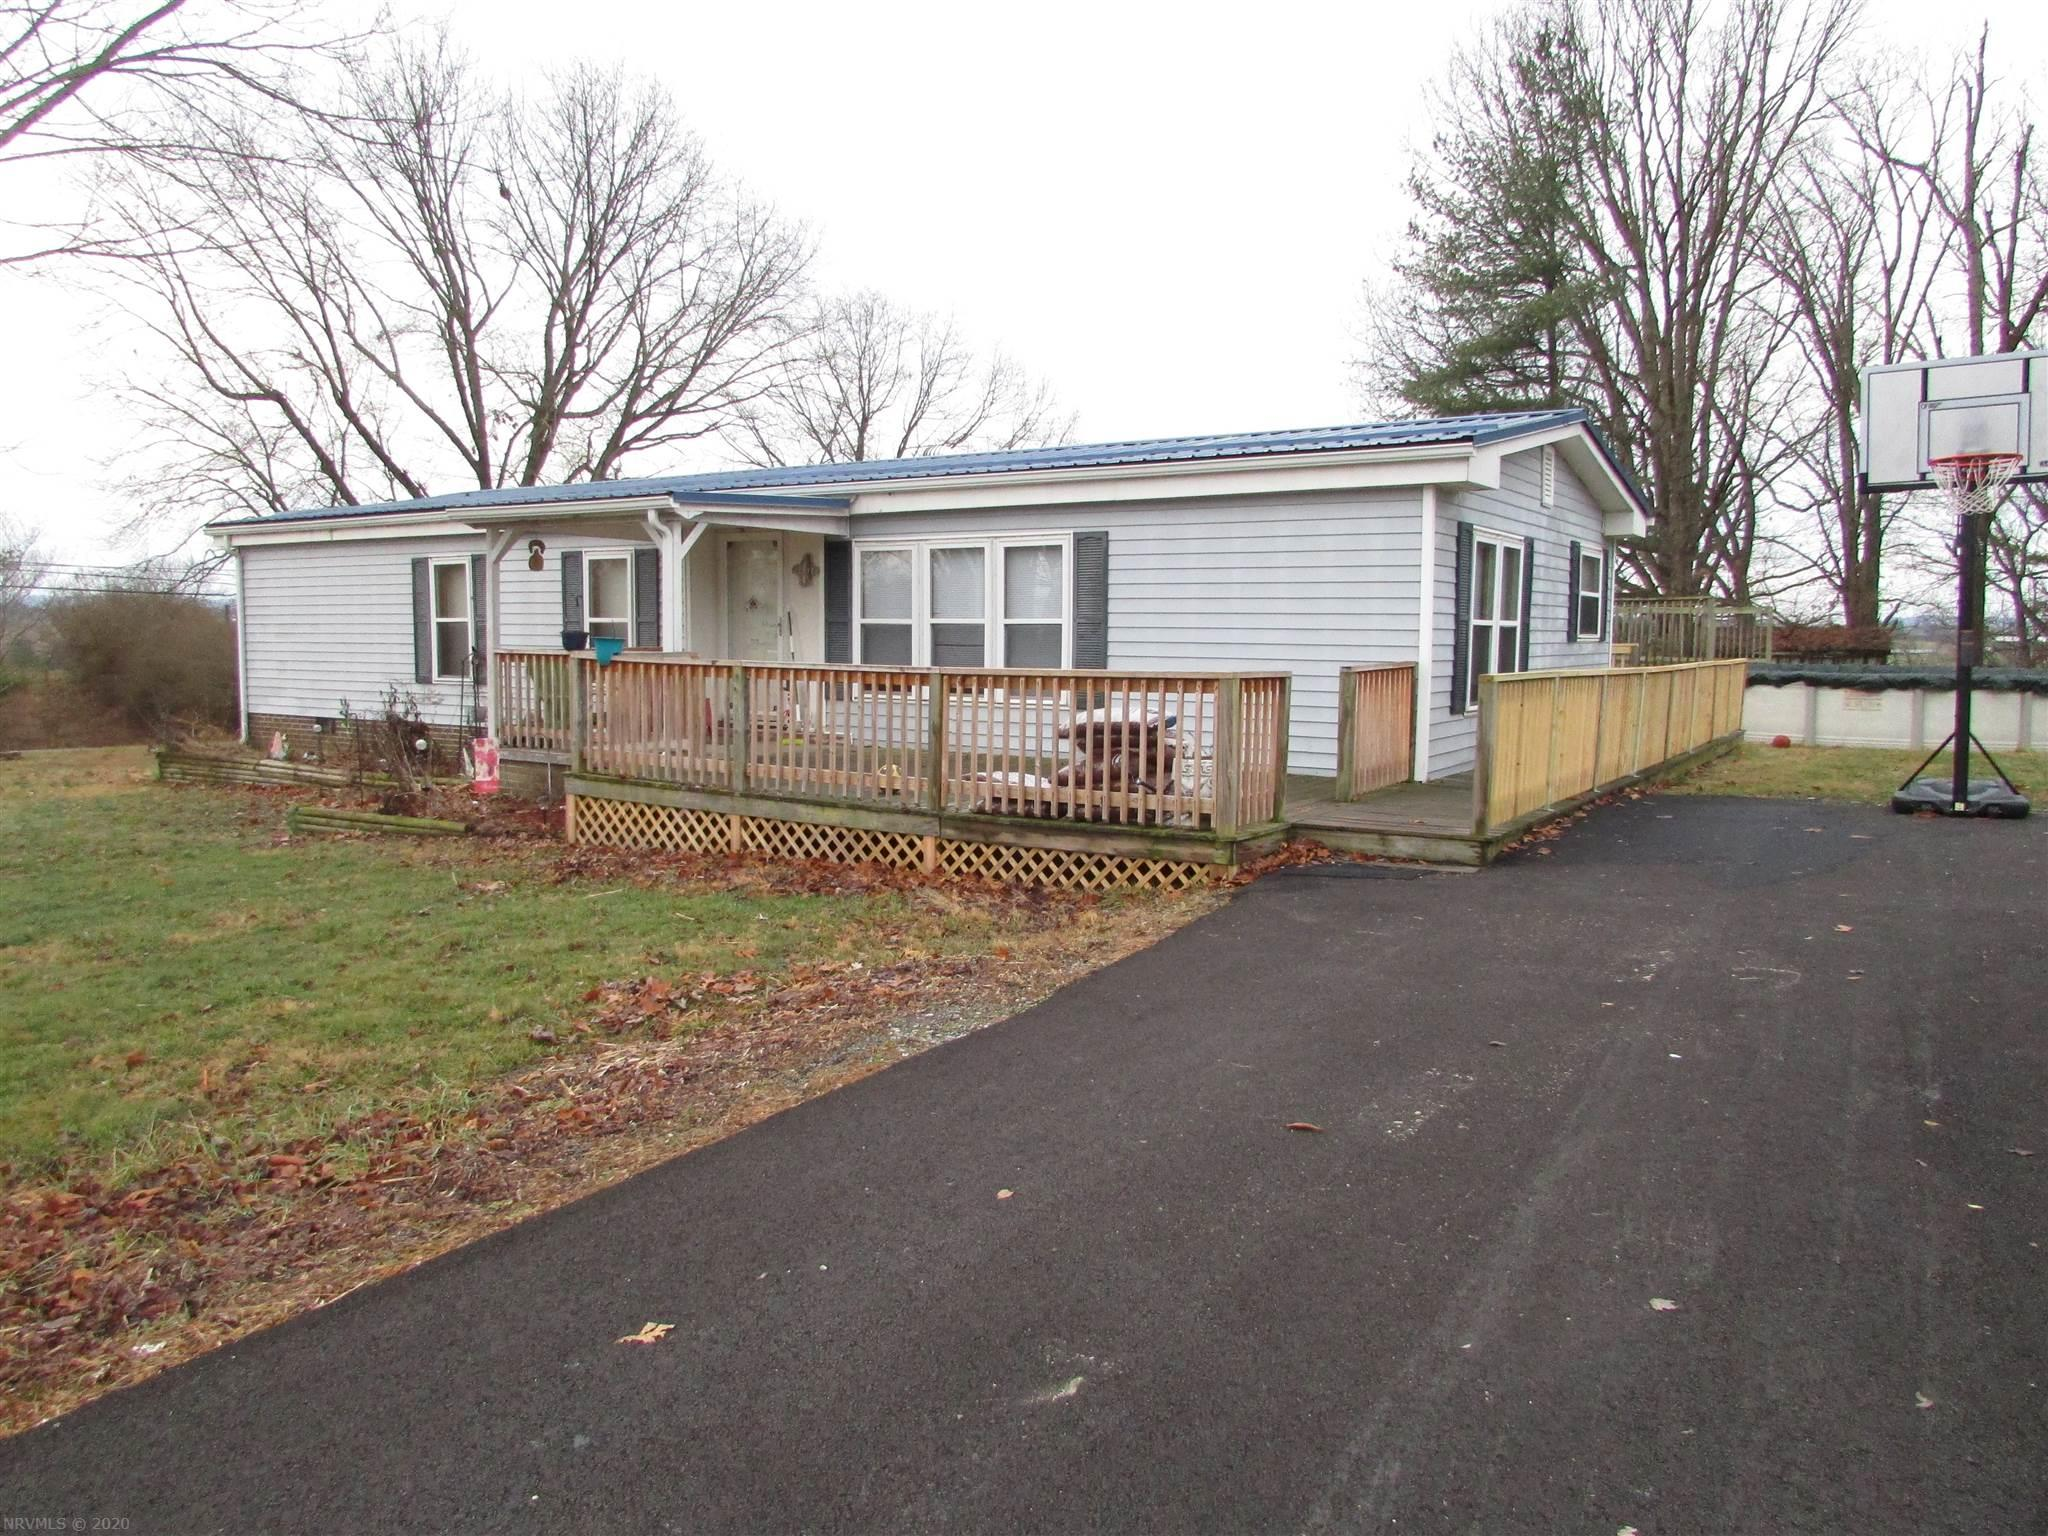 3 bedrooms, 2 bath Double Wide out in the county yet still close to Dublin or Radford.  Nice wrap around deck, paved driveway, large yard  24 x 28 detached garage. Above ground 27 ft. pool with decking.  Heat pump less than 5 years old, roof age 4 yrs., gutter is new, plumbing less than 1 yr old,.   Custom Cabinets